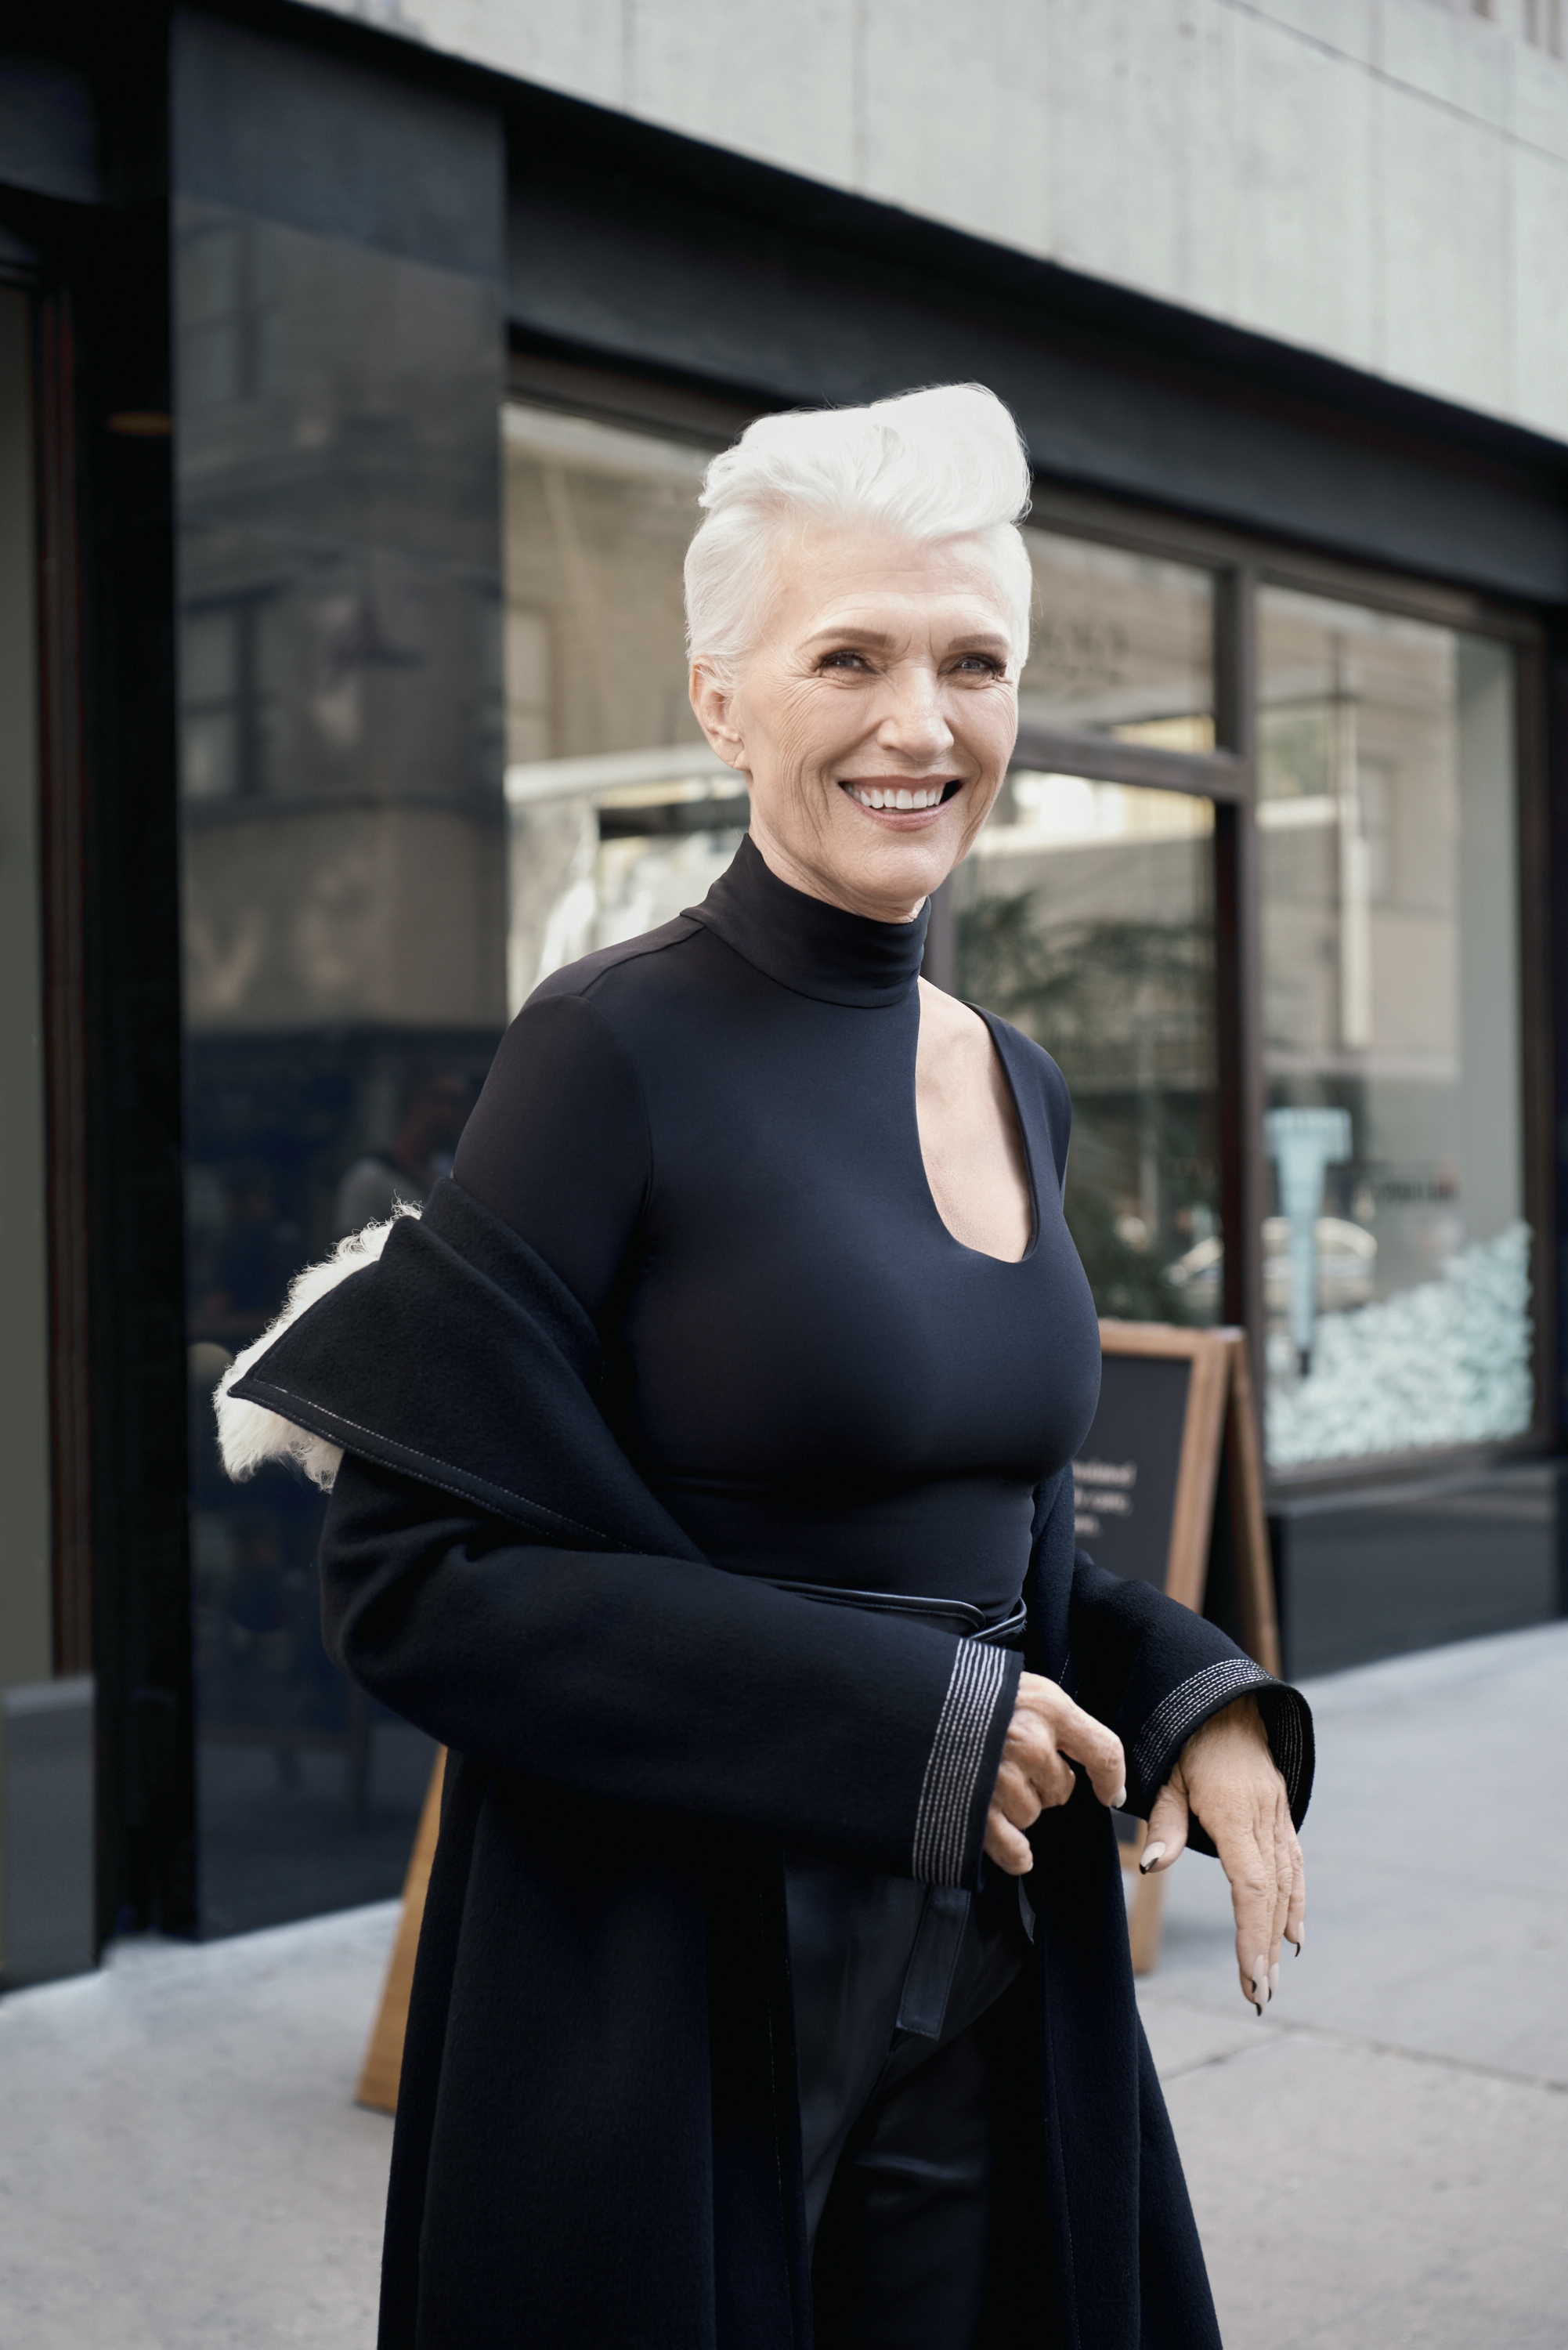 Maye Musk Is The Newest Covergirl Spokesmodel At Age 69